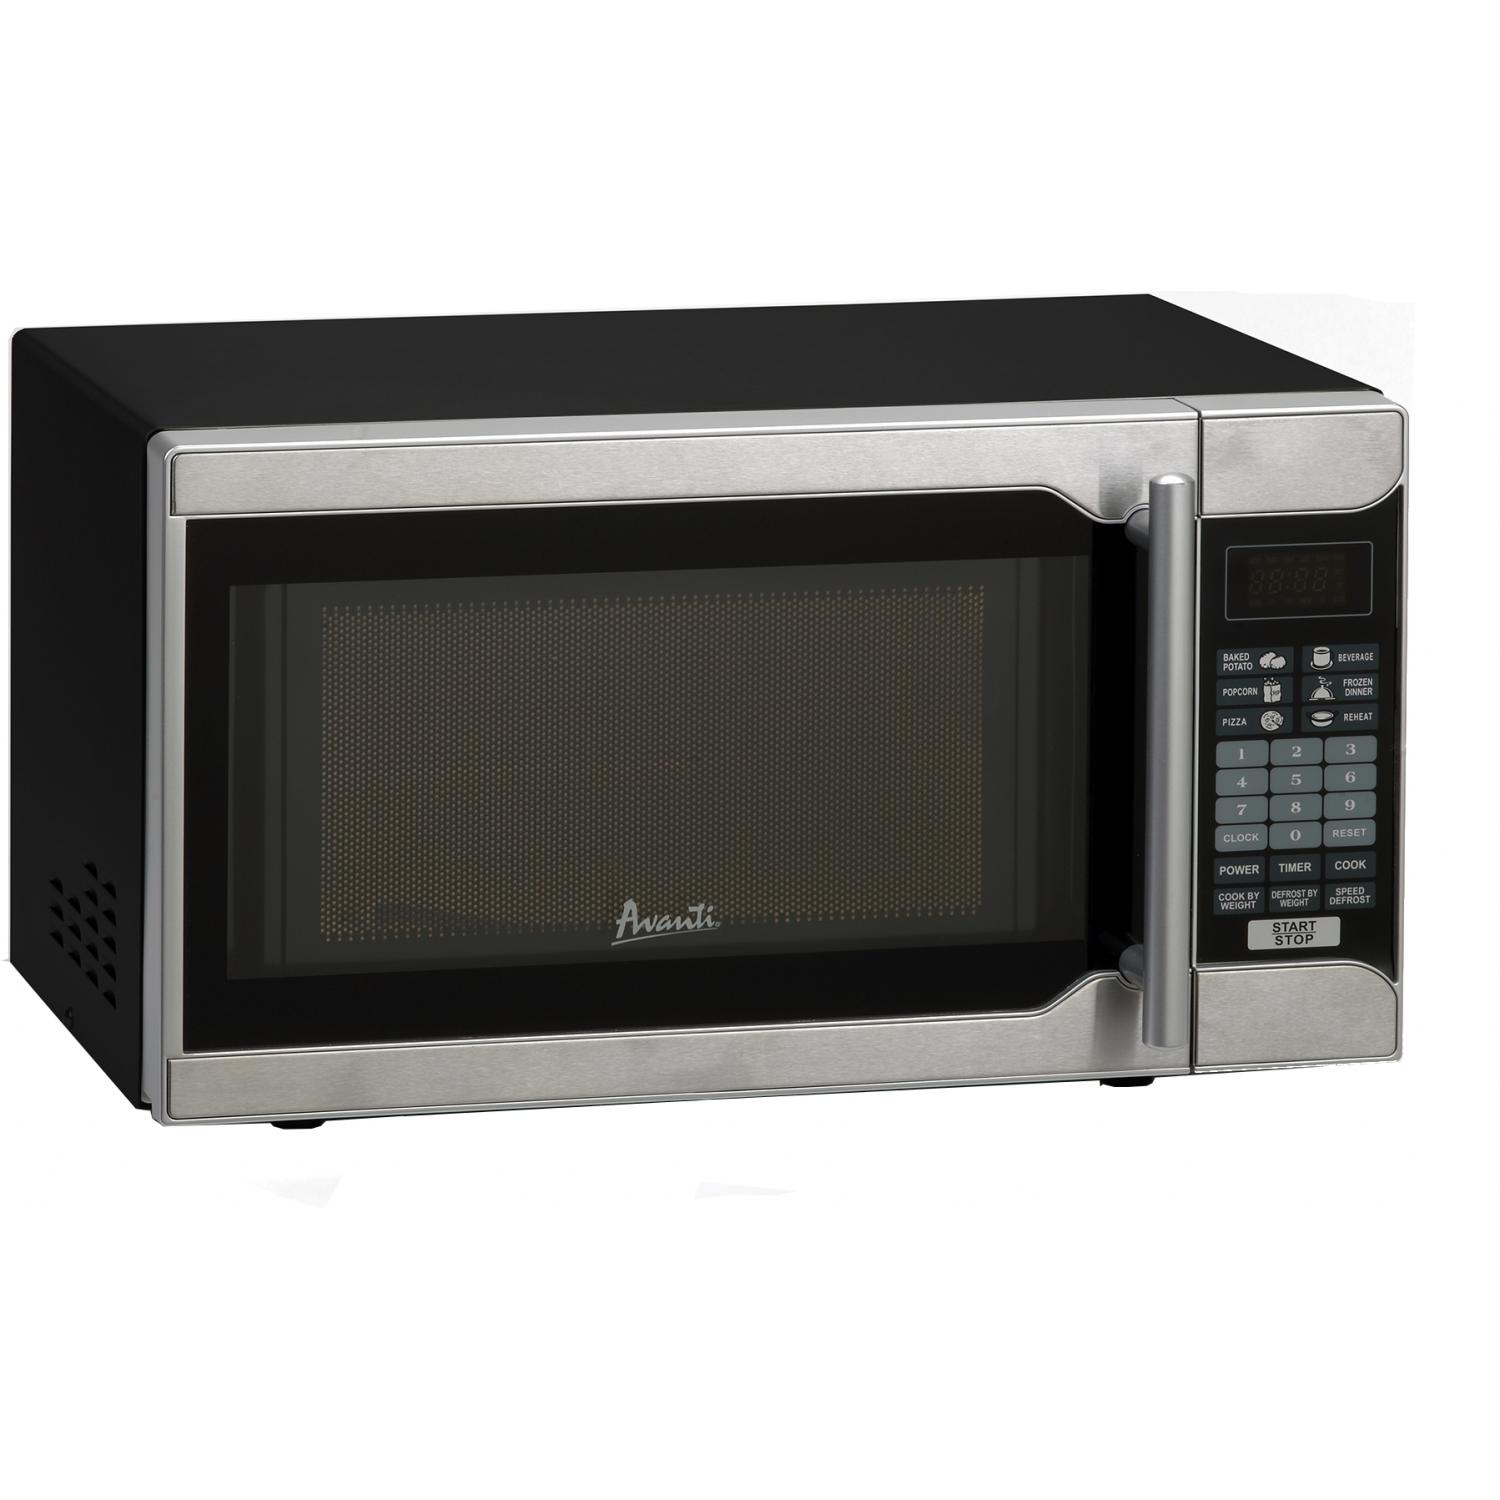 Picture of Avanti 07 Cu Ft Compact Microwave - Black - MO7103SST